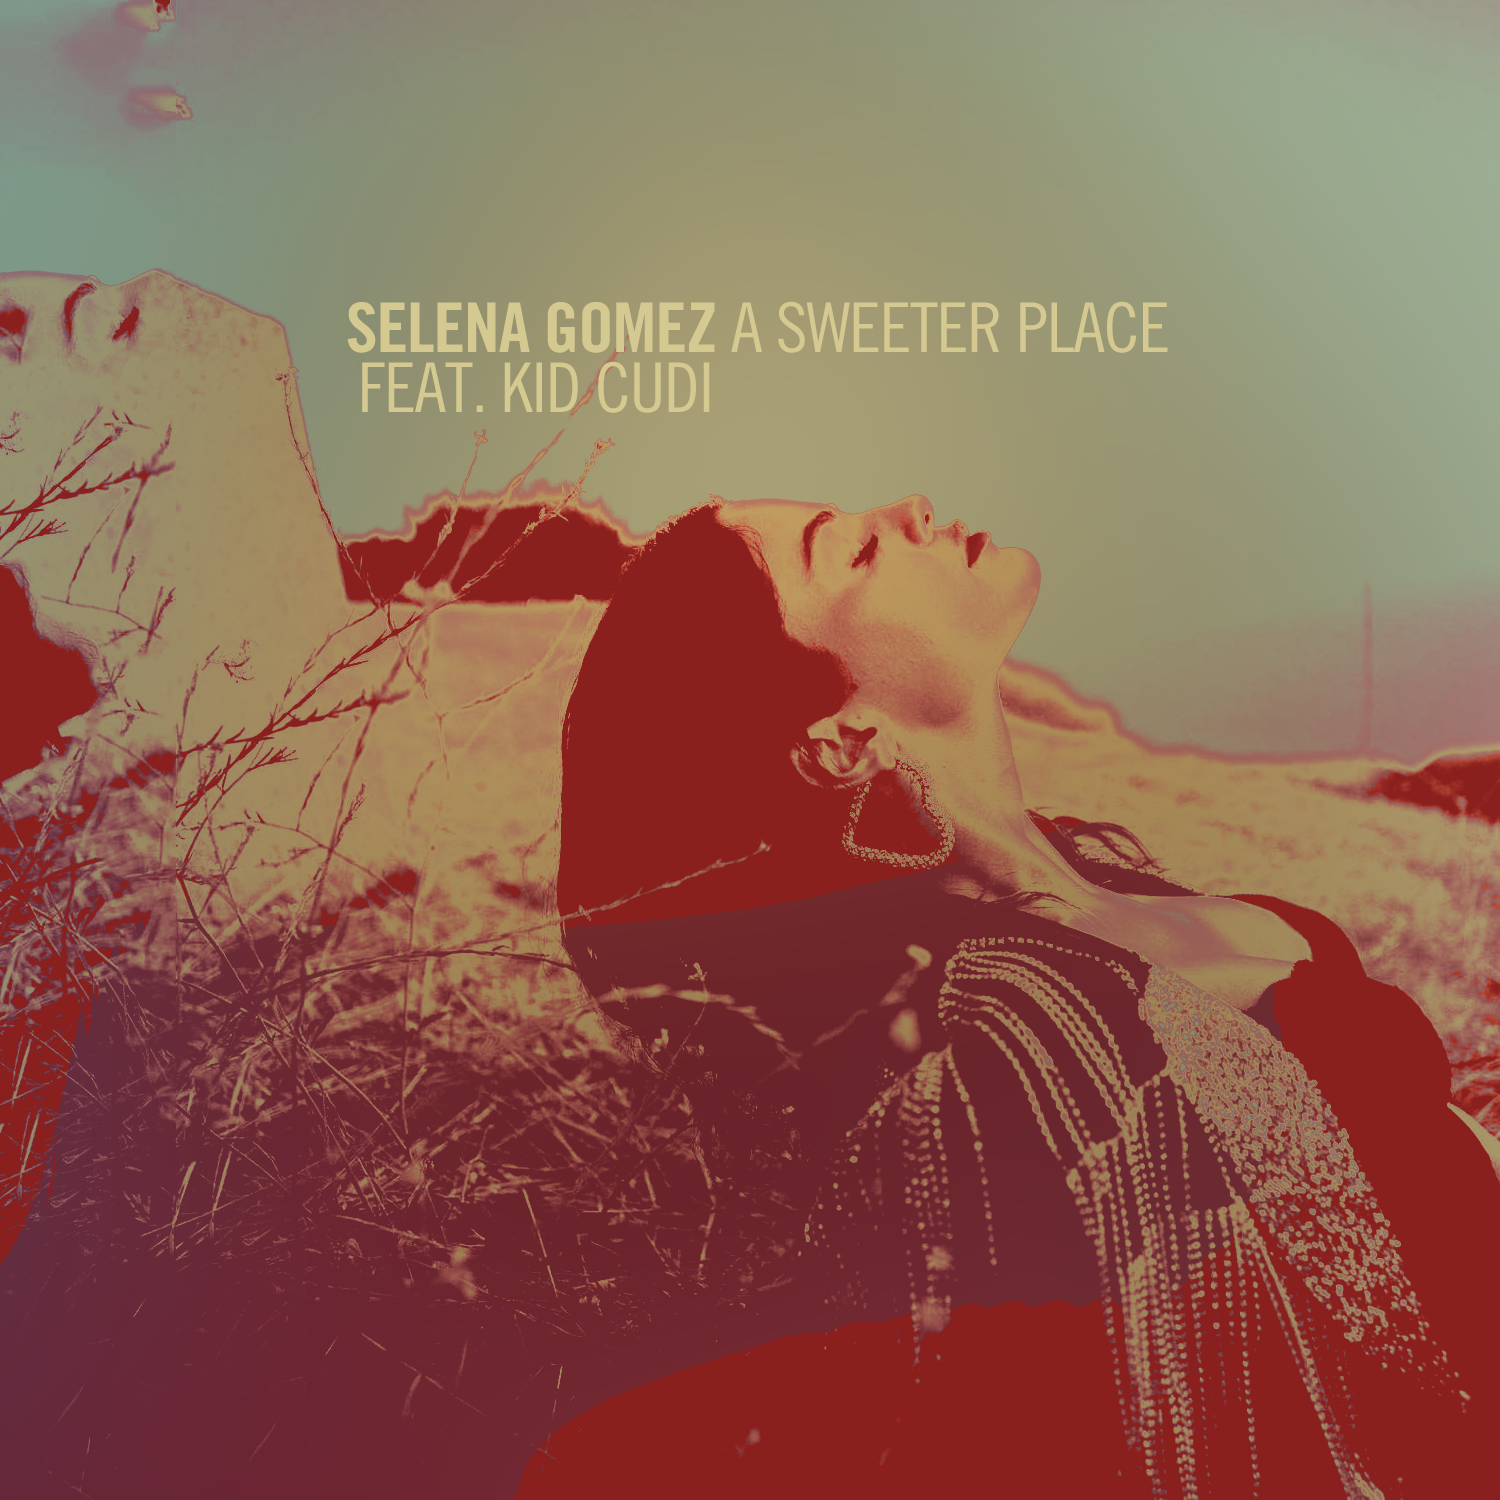 Selena Gomez feat. Kid Cudi - A Sweeter Place (Fanmade Cover)